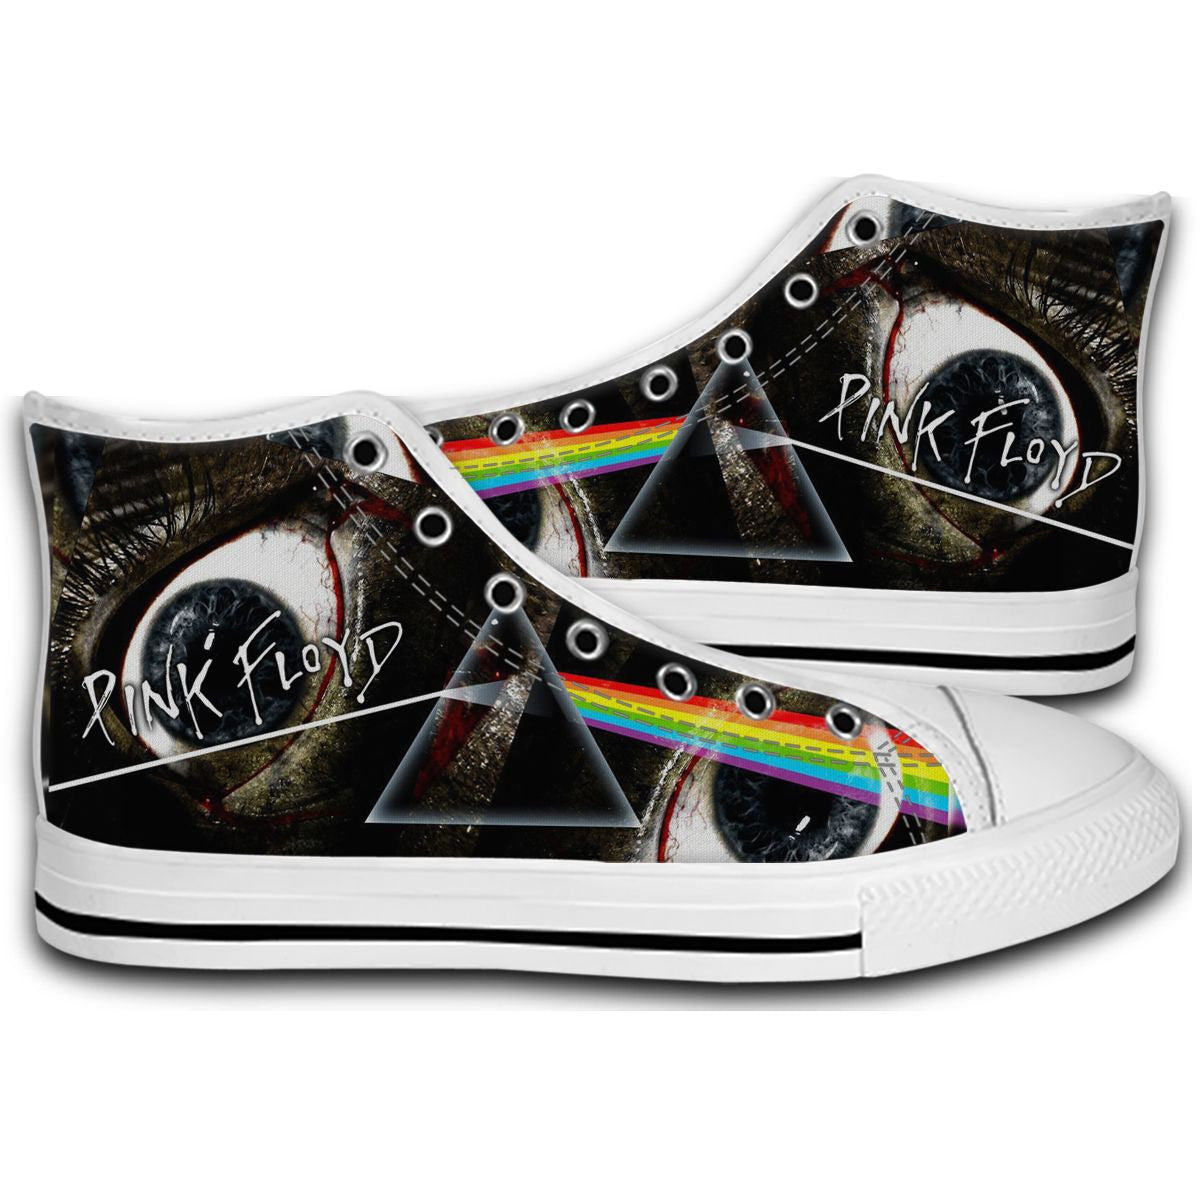 0f480cd19a1834 Pink Floyd Band Logo CANVAS STYLE SHOES FASHION SNEAKERS